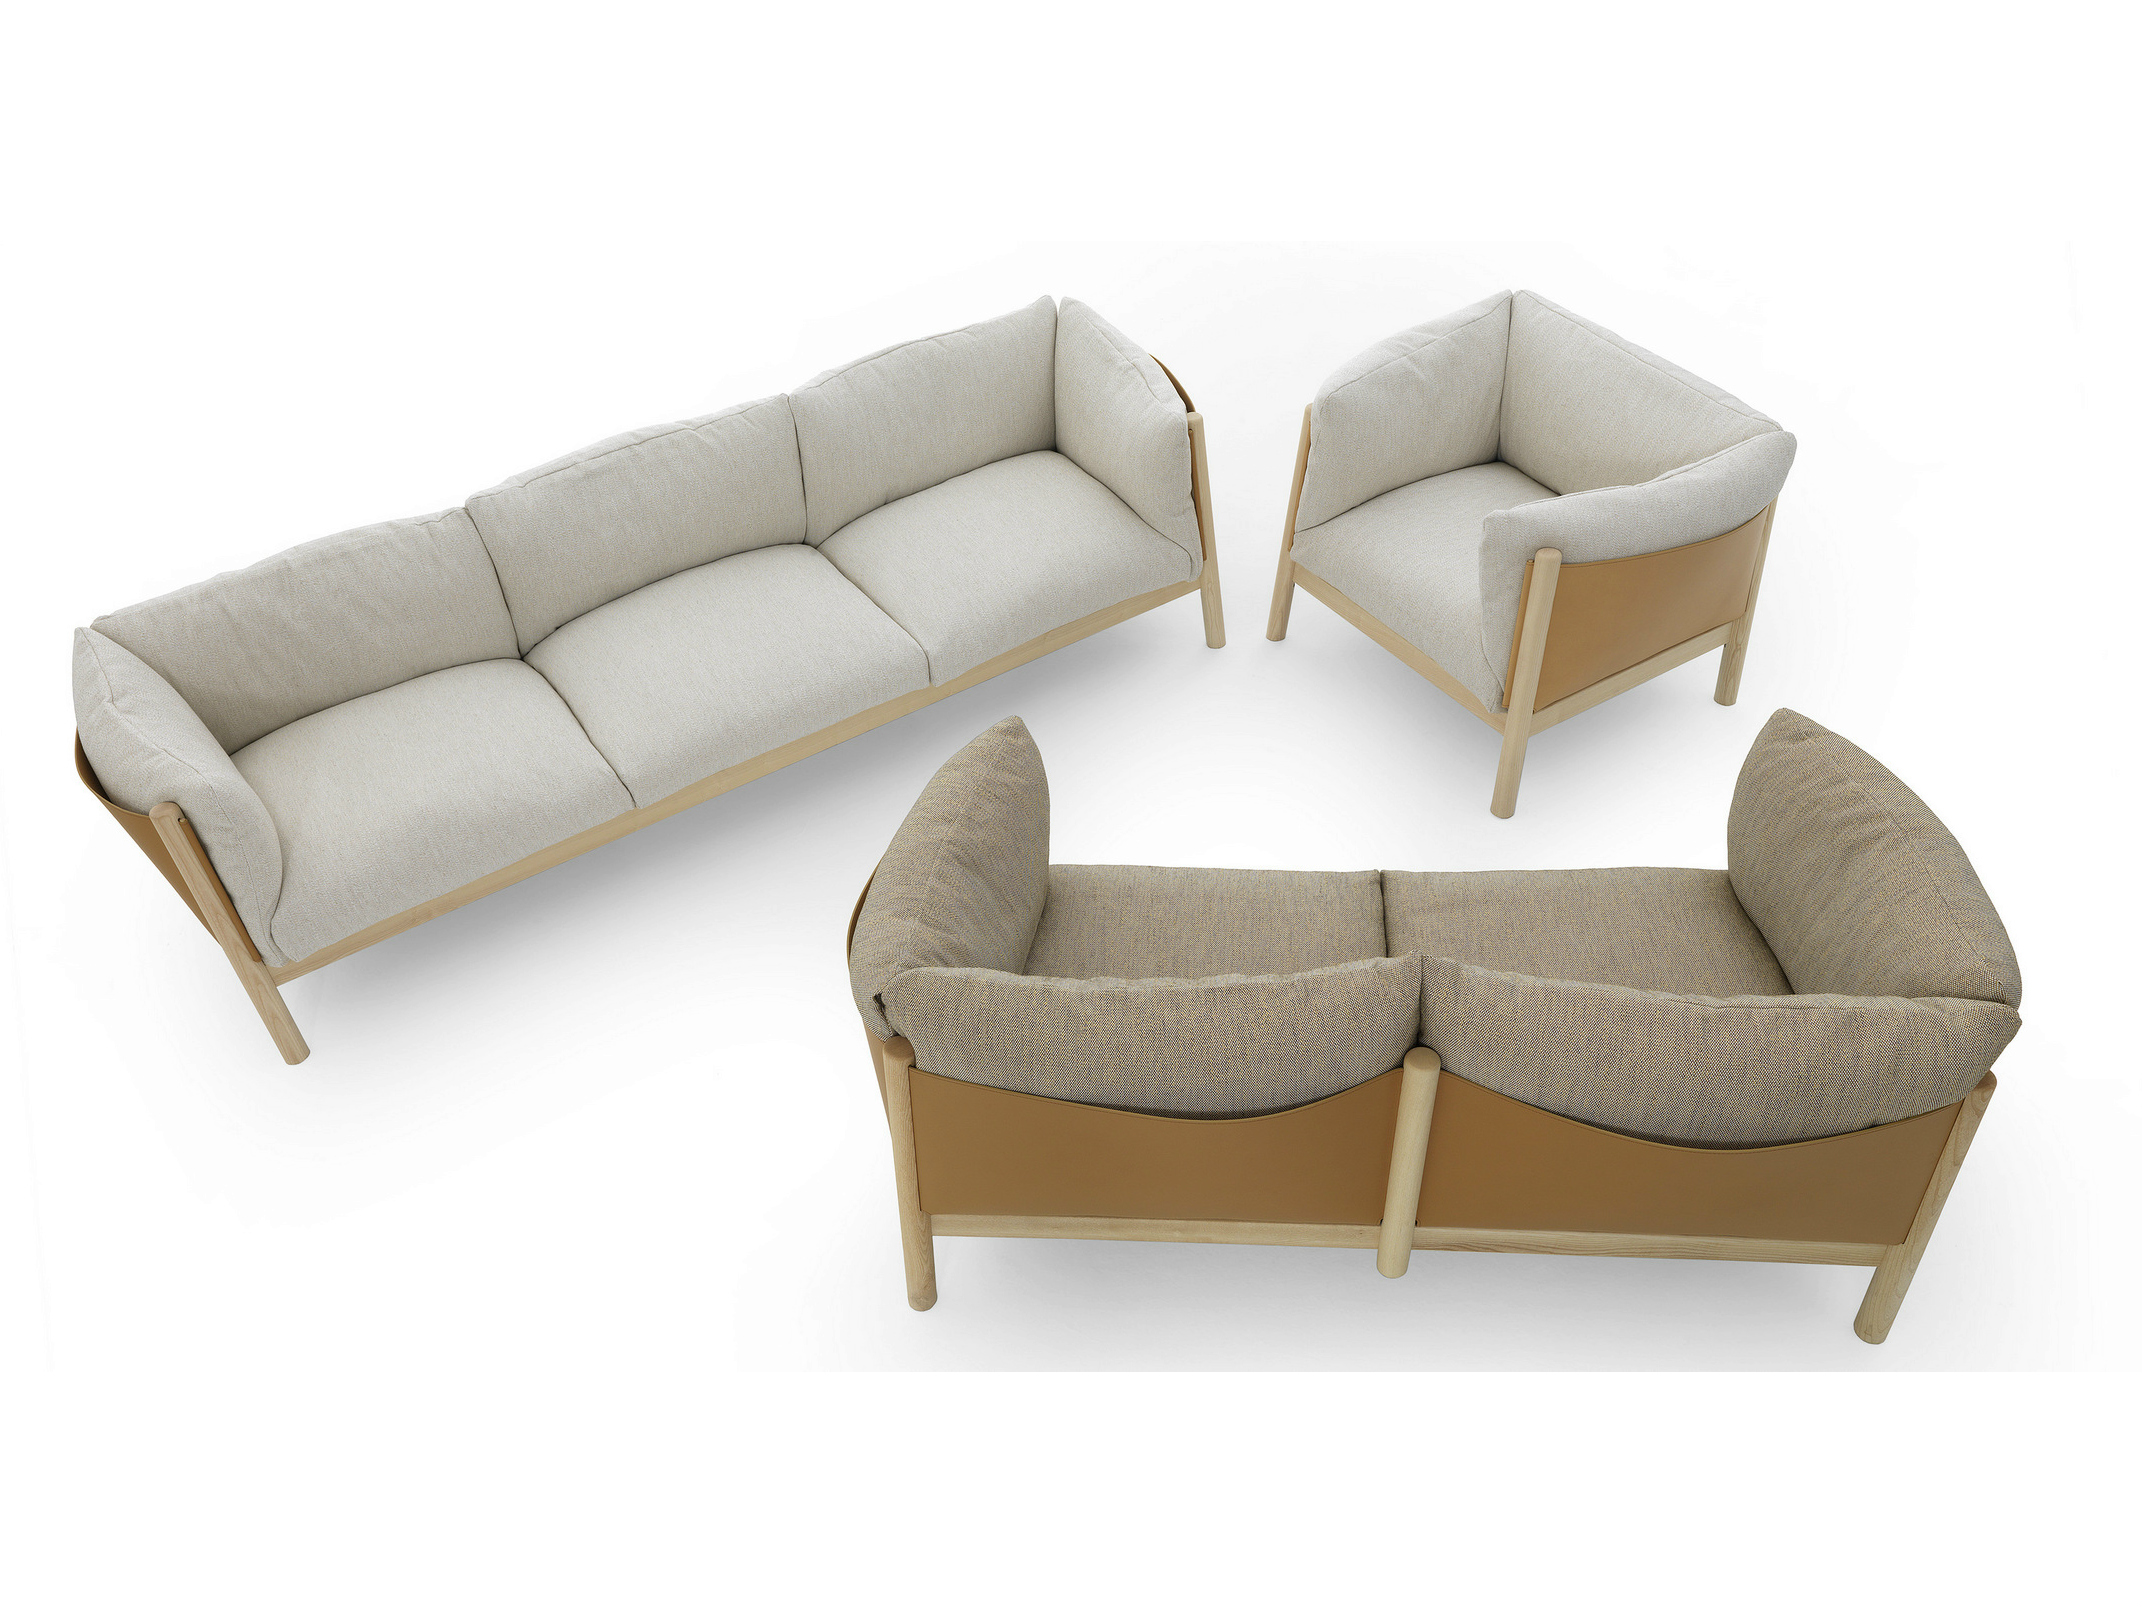 Yak sofa chair collection by lucidipevere for de padova